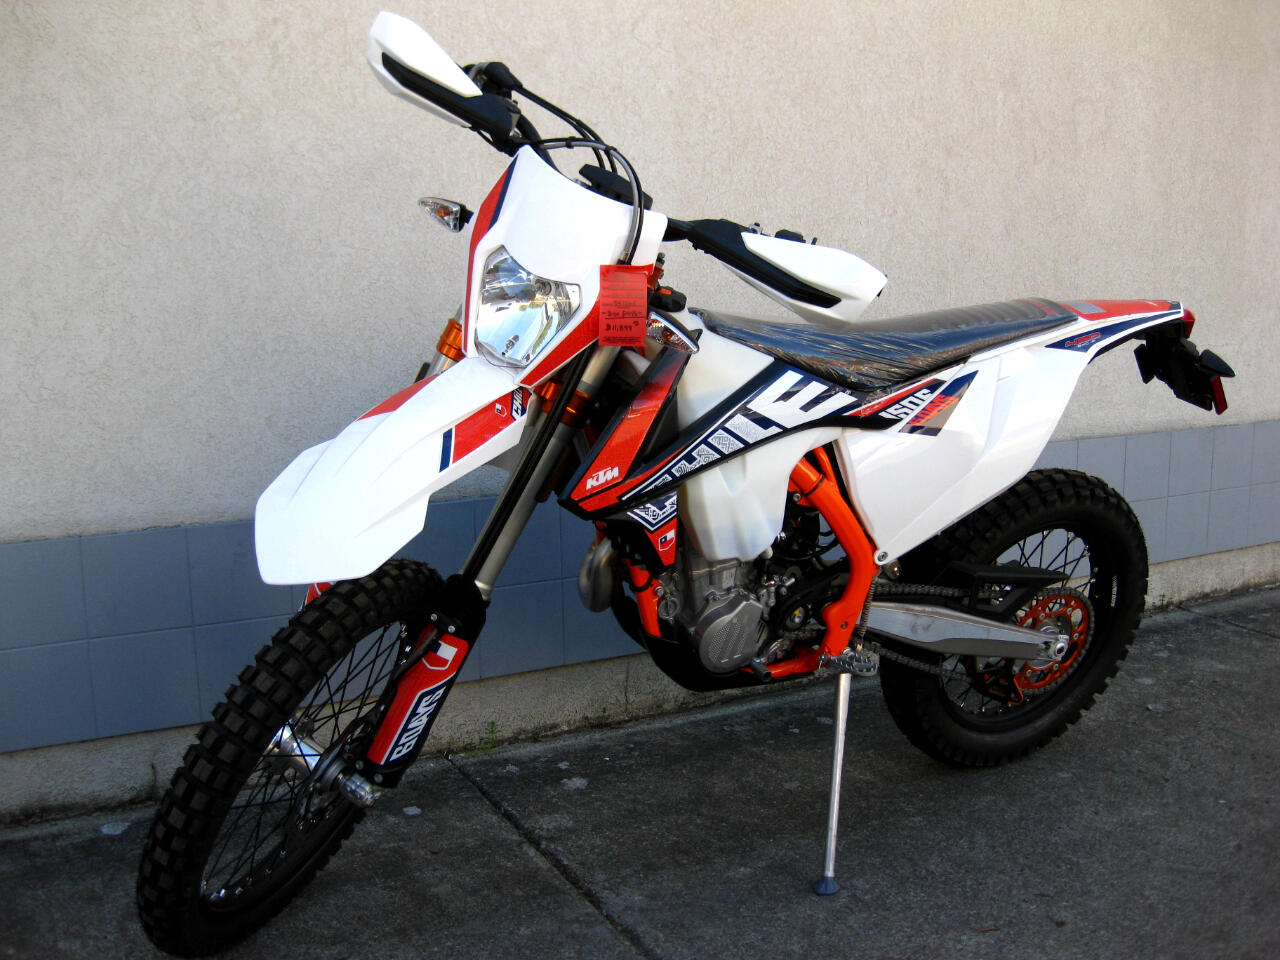 New 2019 KTM 450 EXC-F for Sale in Orofino, ID 83544 Hanson Garage Inc